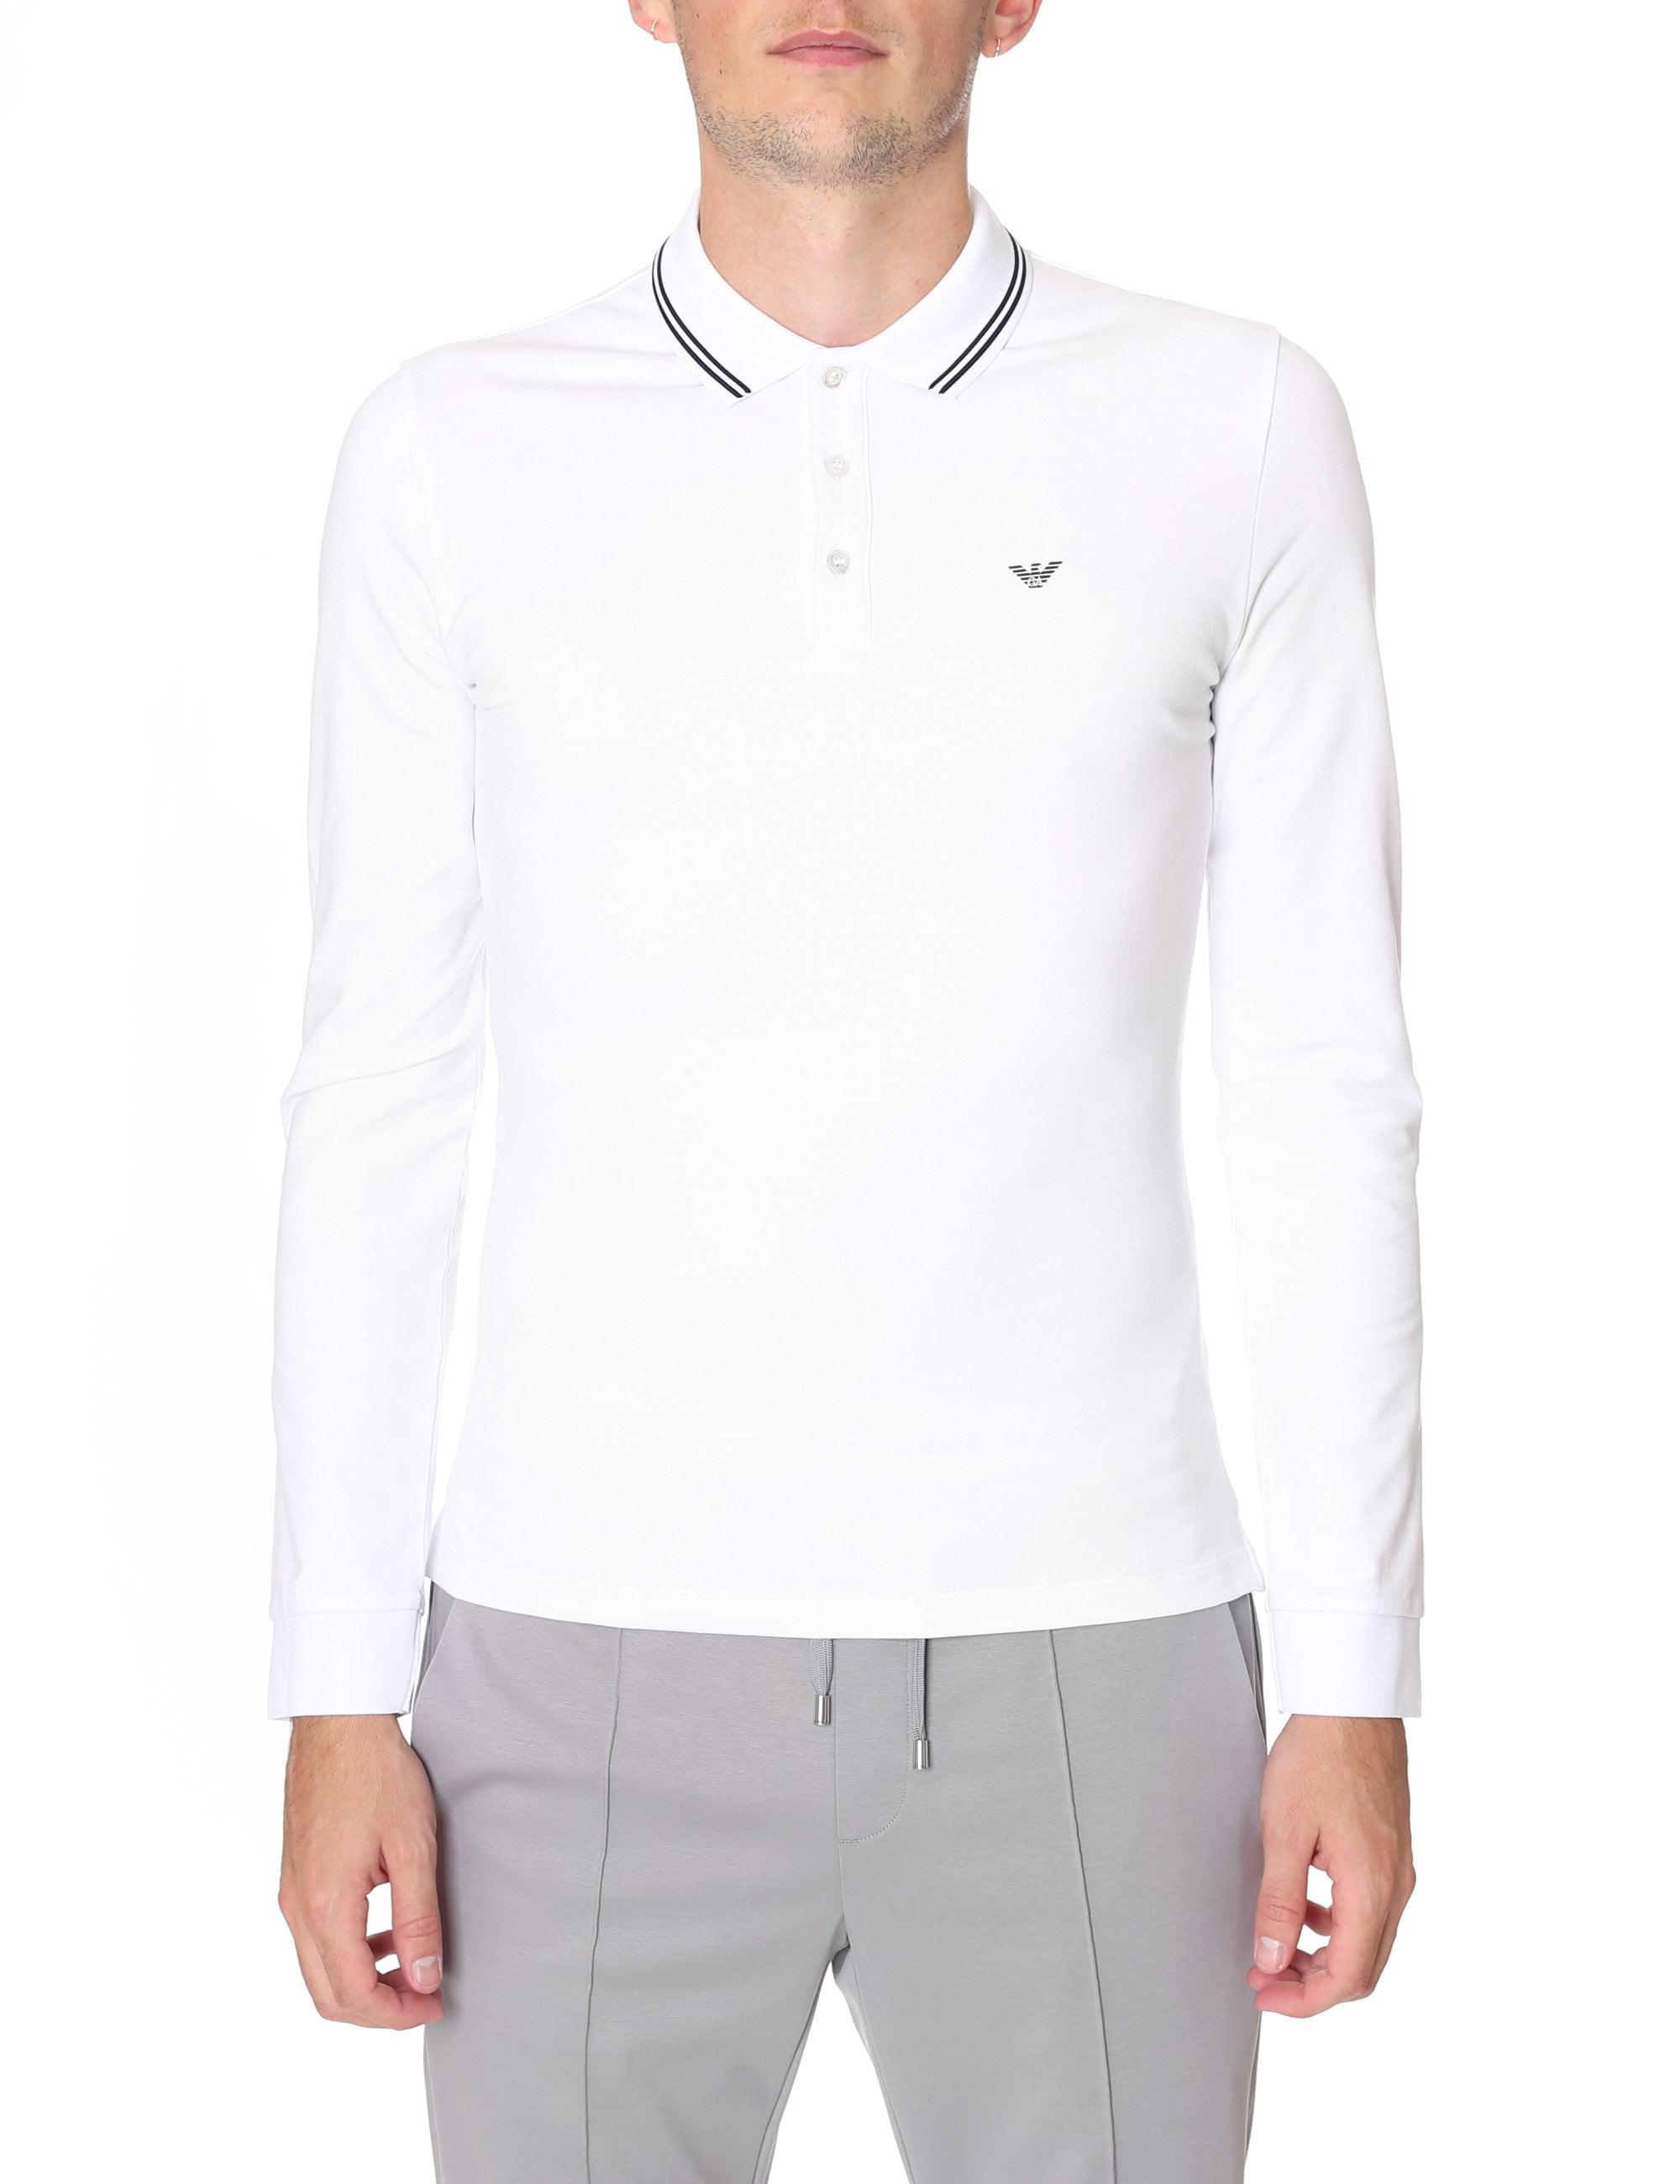 b197eac06675 Emporio Armani Slim Fit Long Sleeve Polo Top in White for Men - Lyst